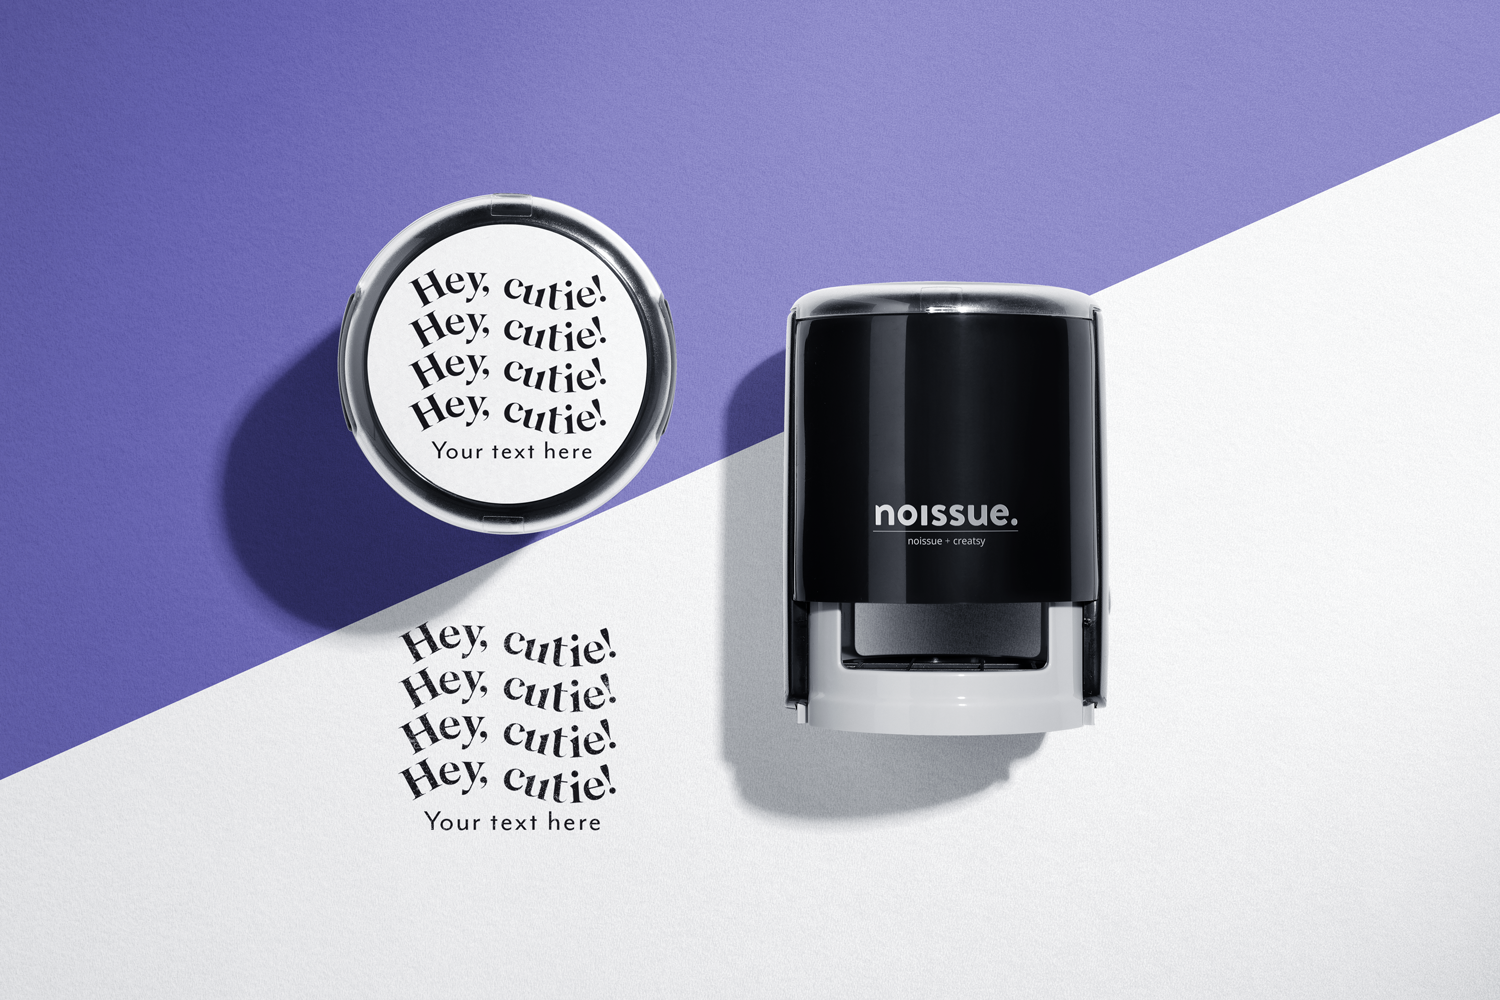 Meet noissue's new Community Stamp Designs and the Creatives Behind Them